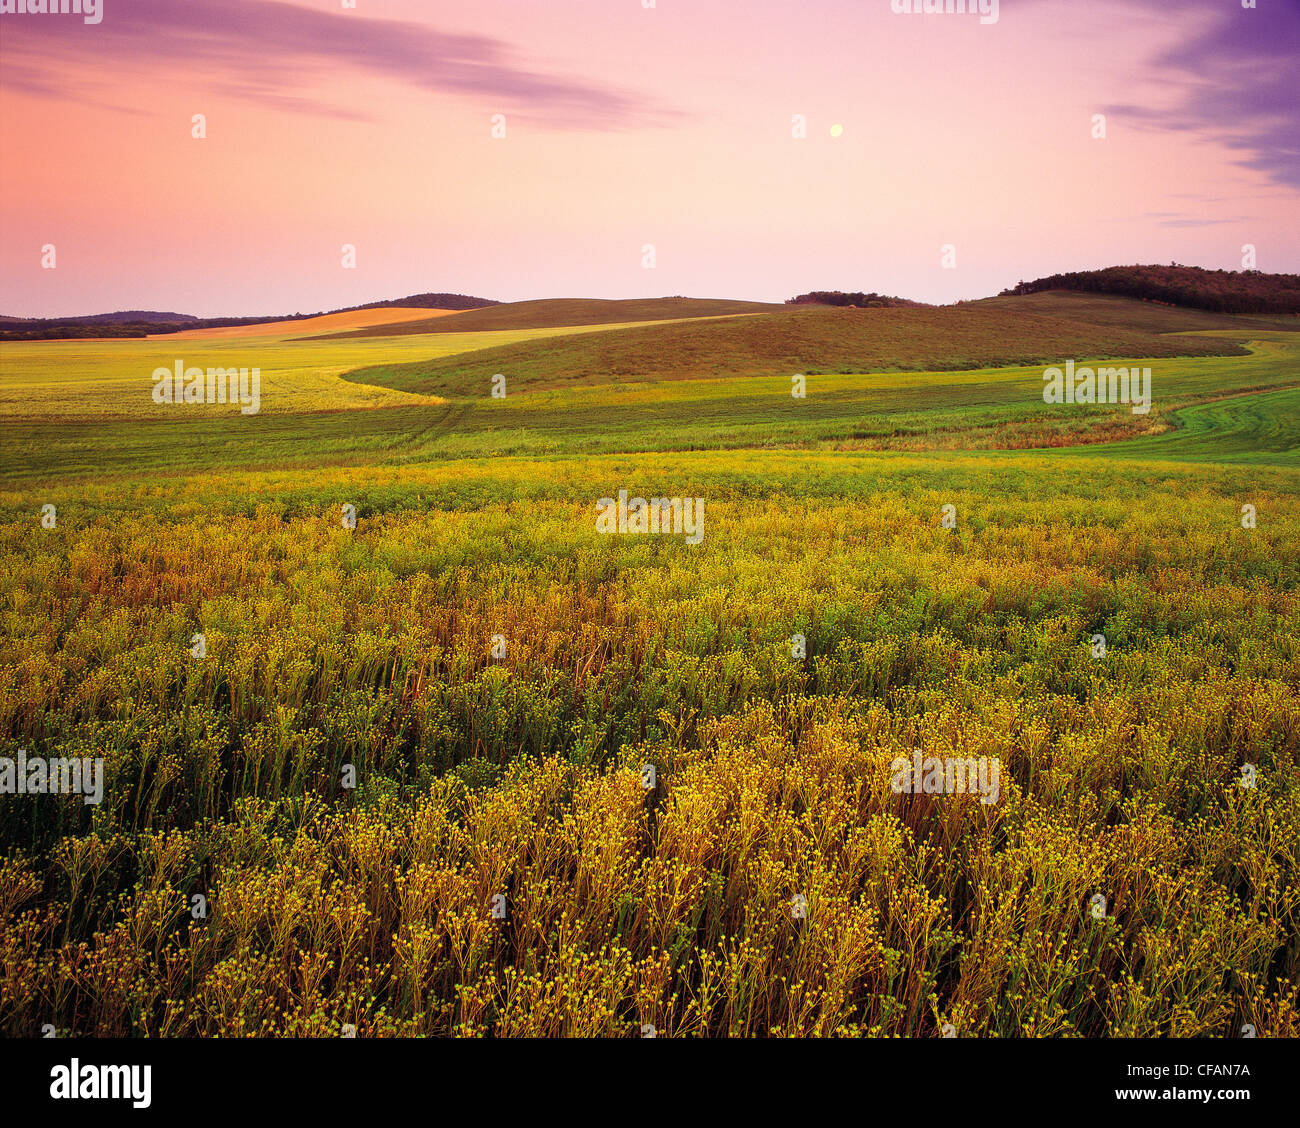 Flax field with other crop patterns in the background, Tiger Hills near Holland, Manitoba, Canada - Stock Image